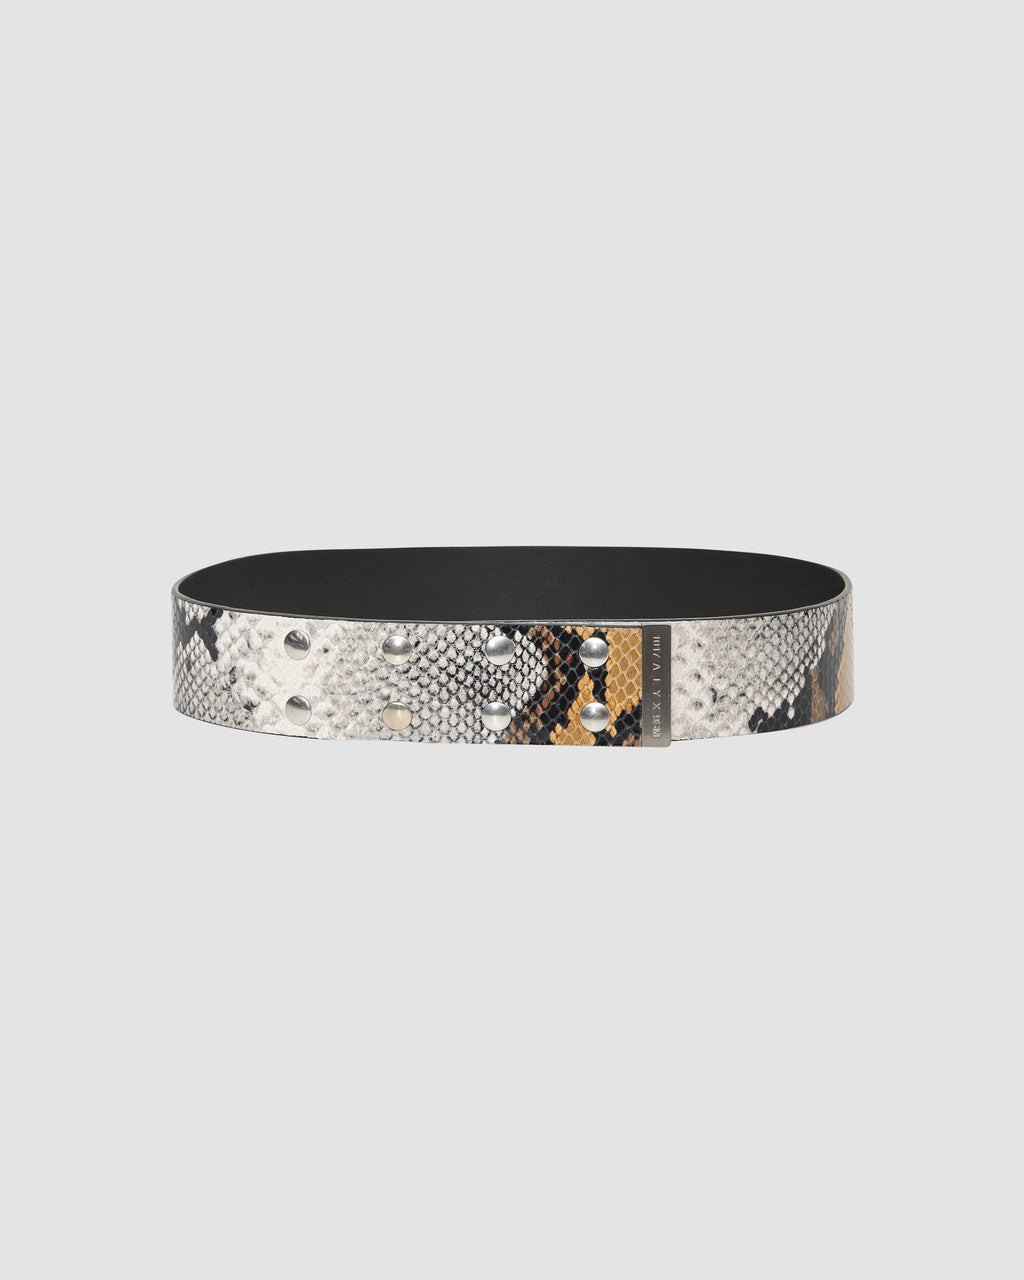 LEATHER ANIMAL PRINT SNAP BELT